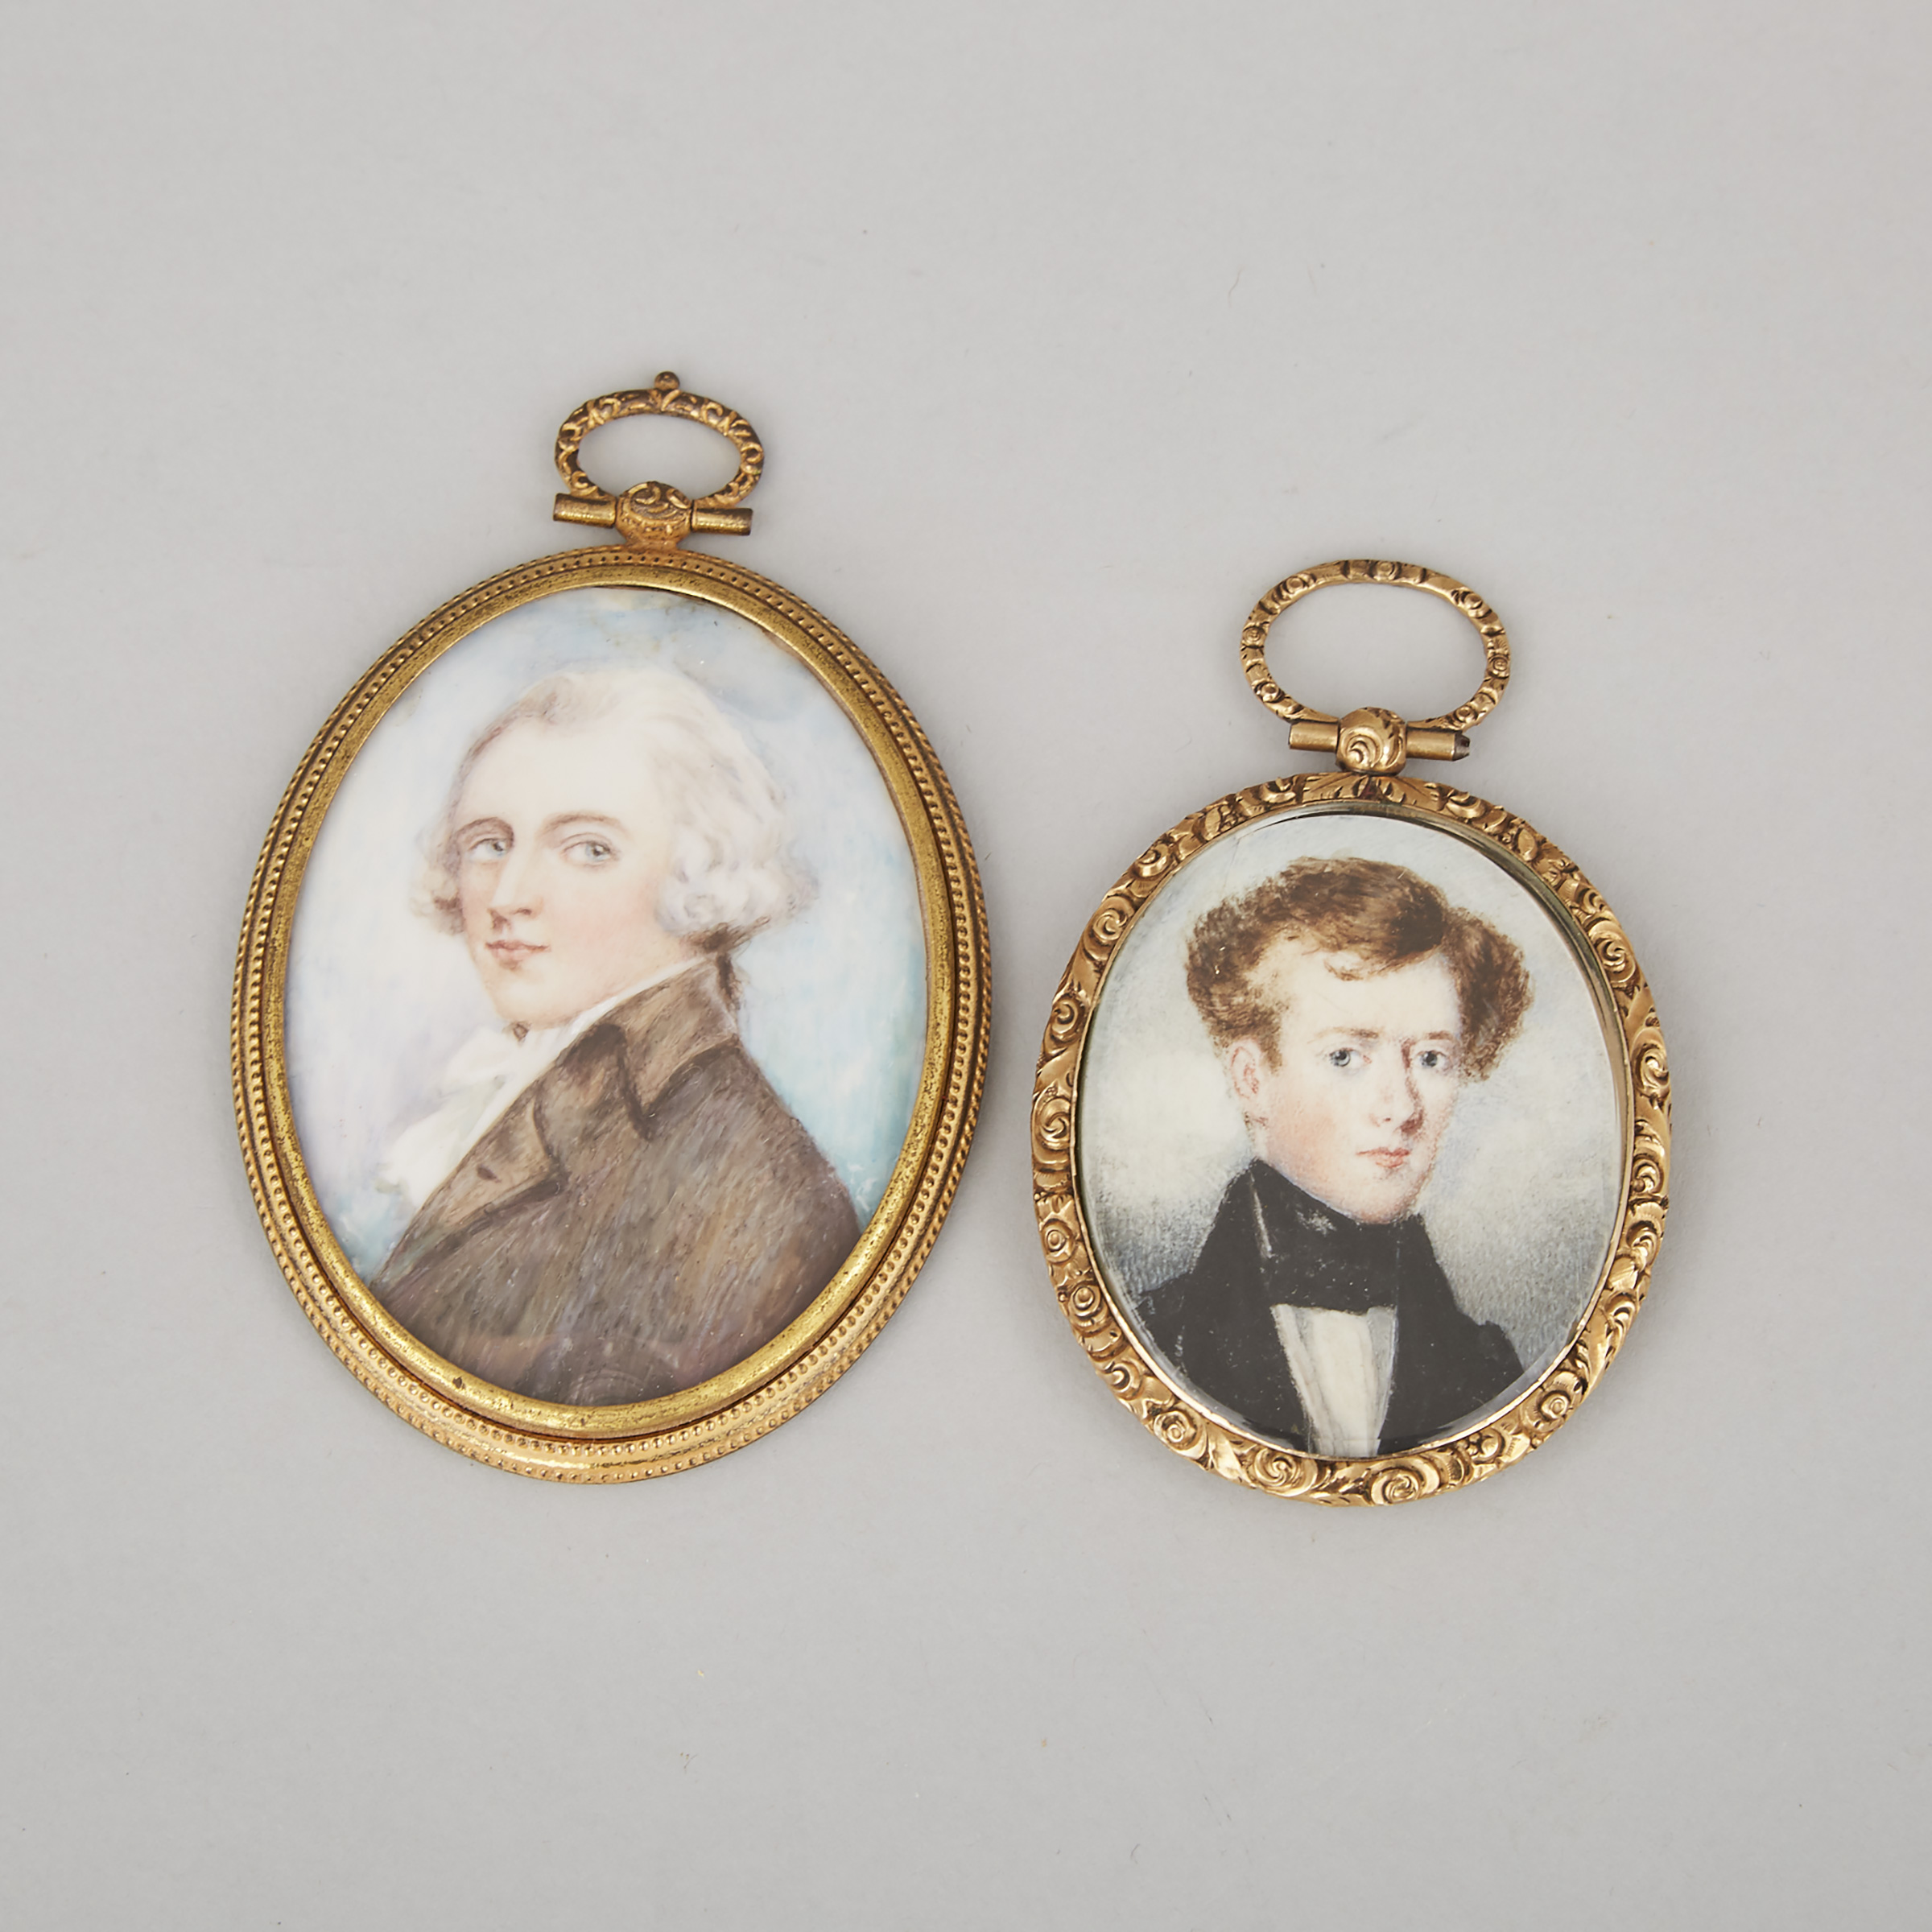 Two British School Portraits of Gentlemen, 18th/early 19th centuries